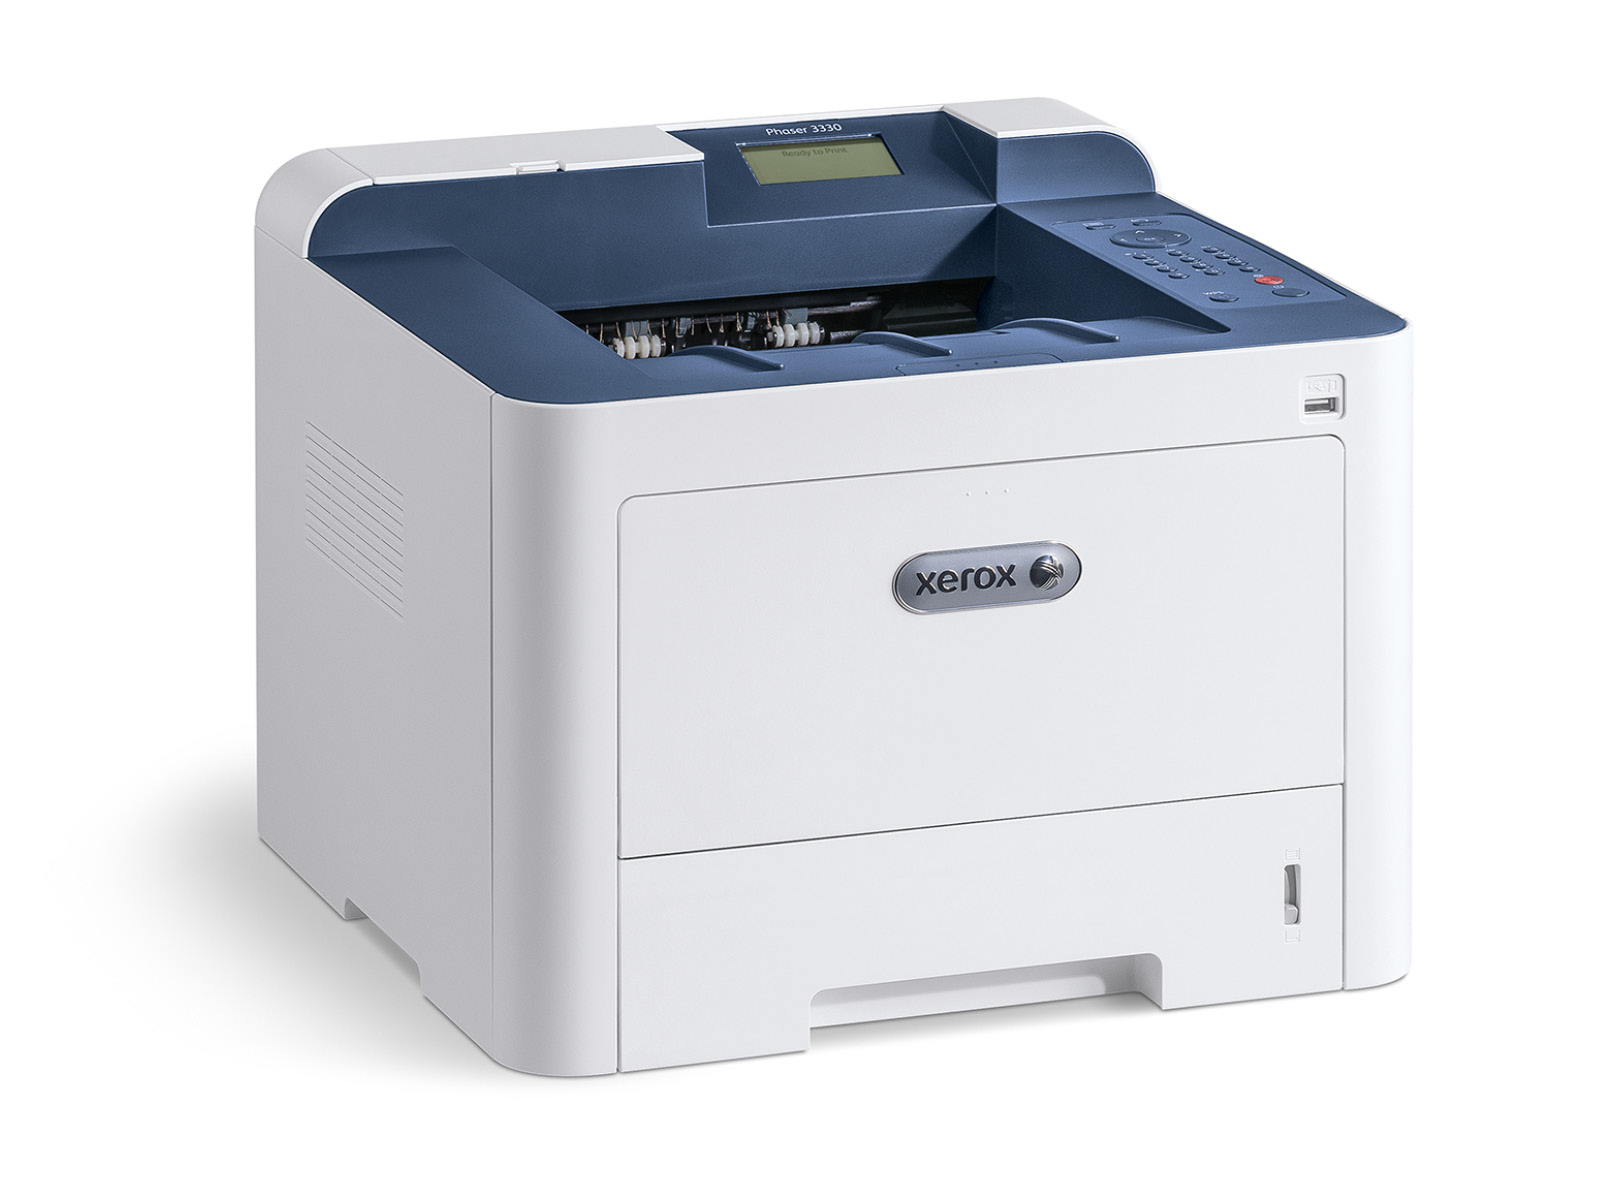 Xerox Phaser 3330 - Document Network Services Ltd